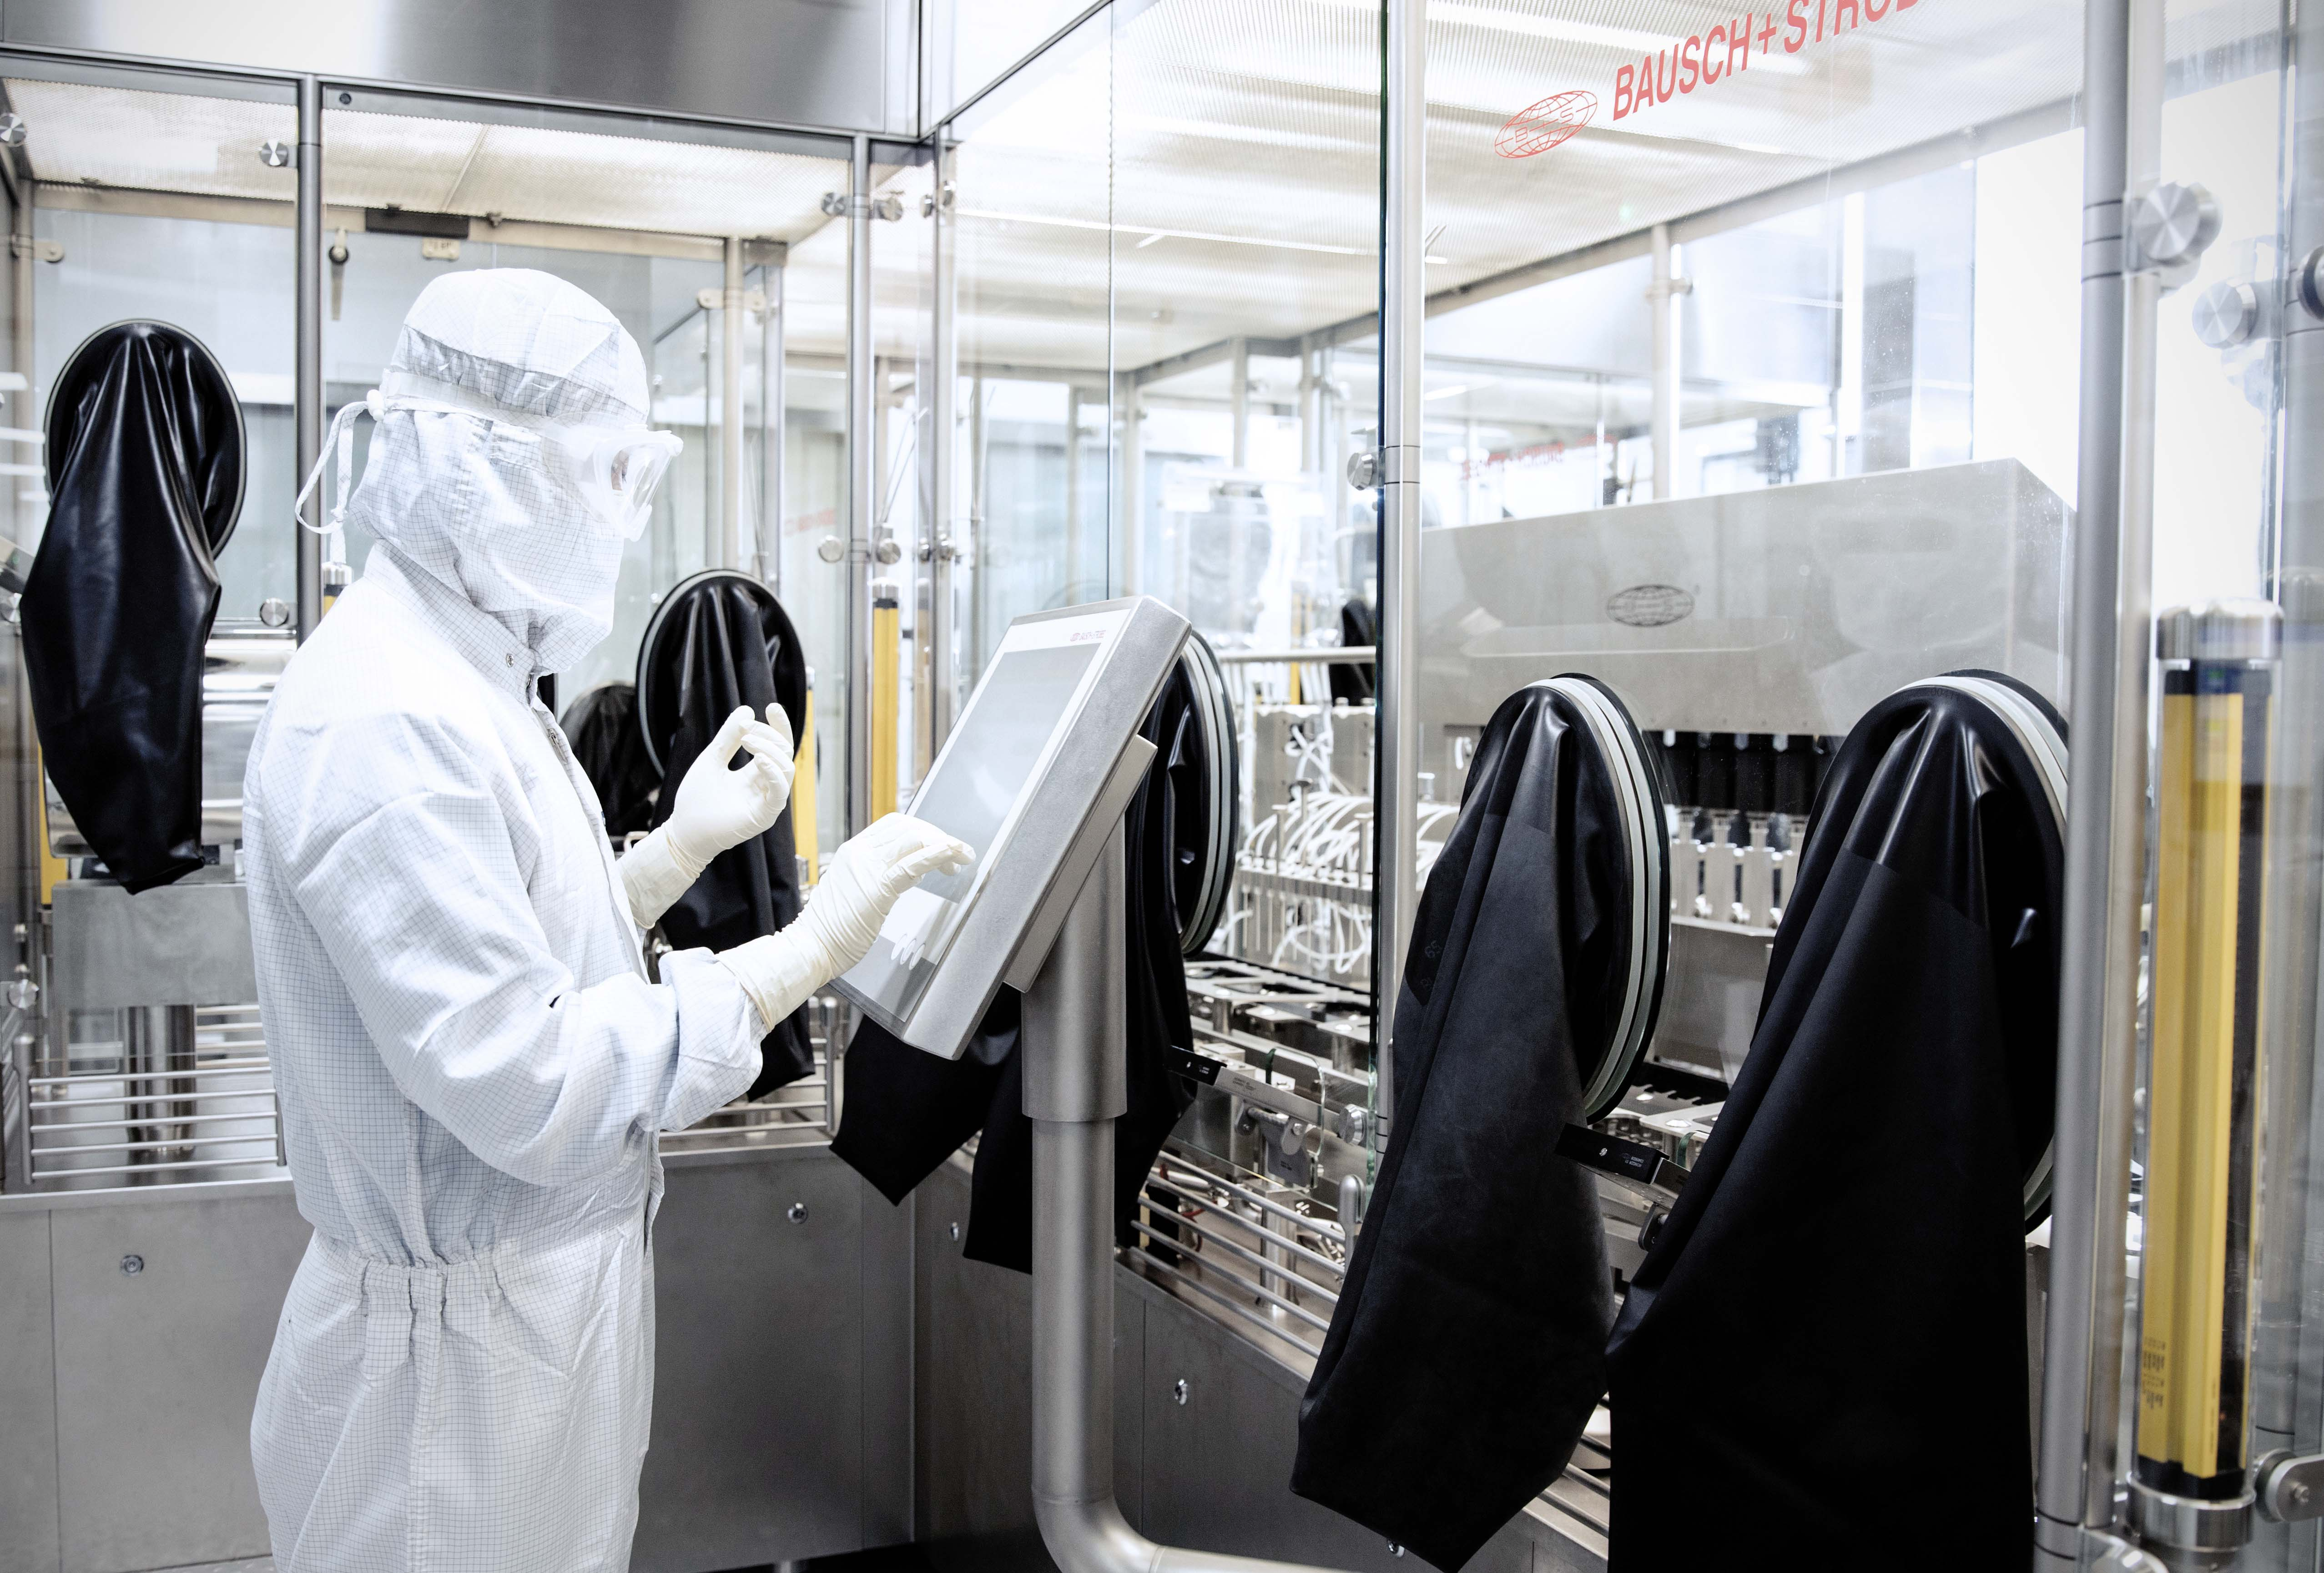 Samsung Biologics Expands Drug Product Manufacturing Facility in Incheon